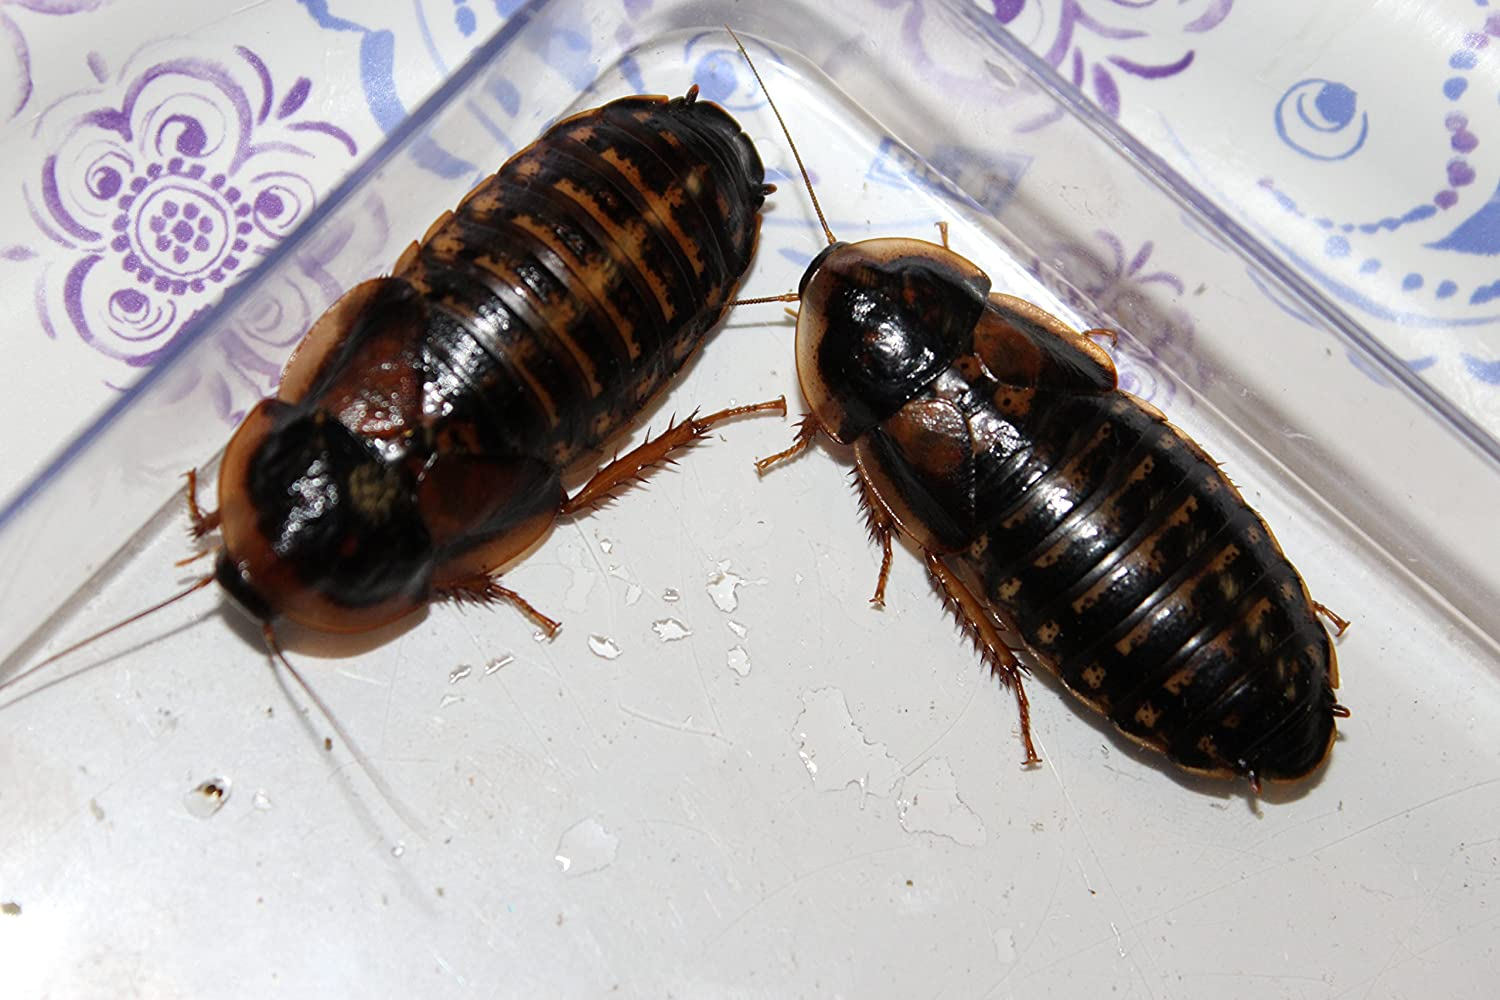 Adult Dubia Roaches 35 Females//10 Males FREE SHIPPING